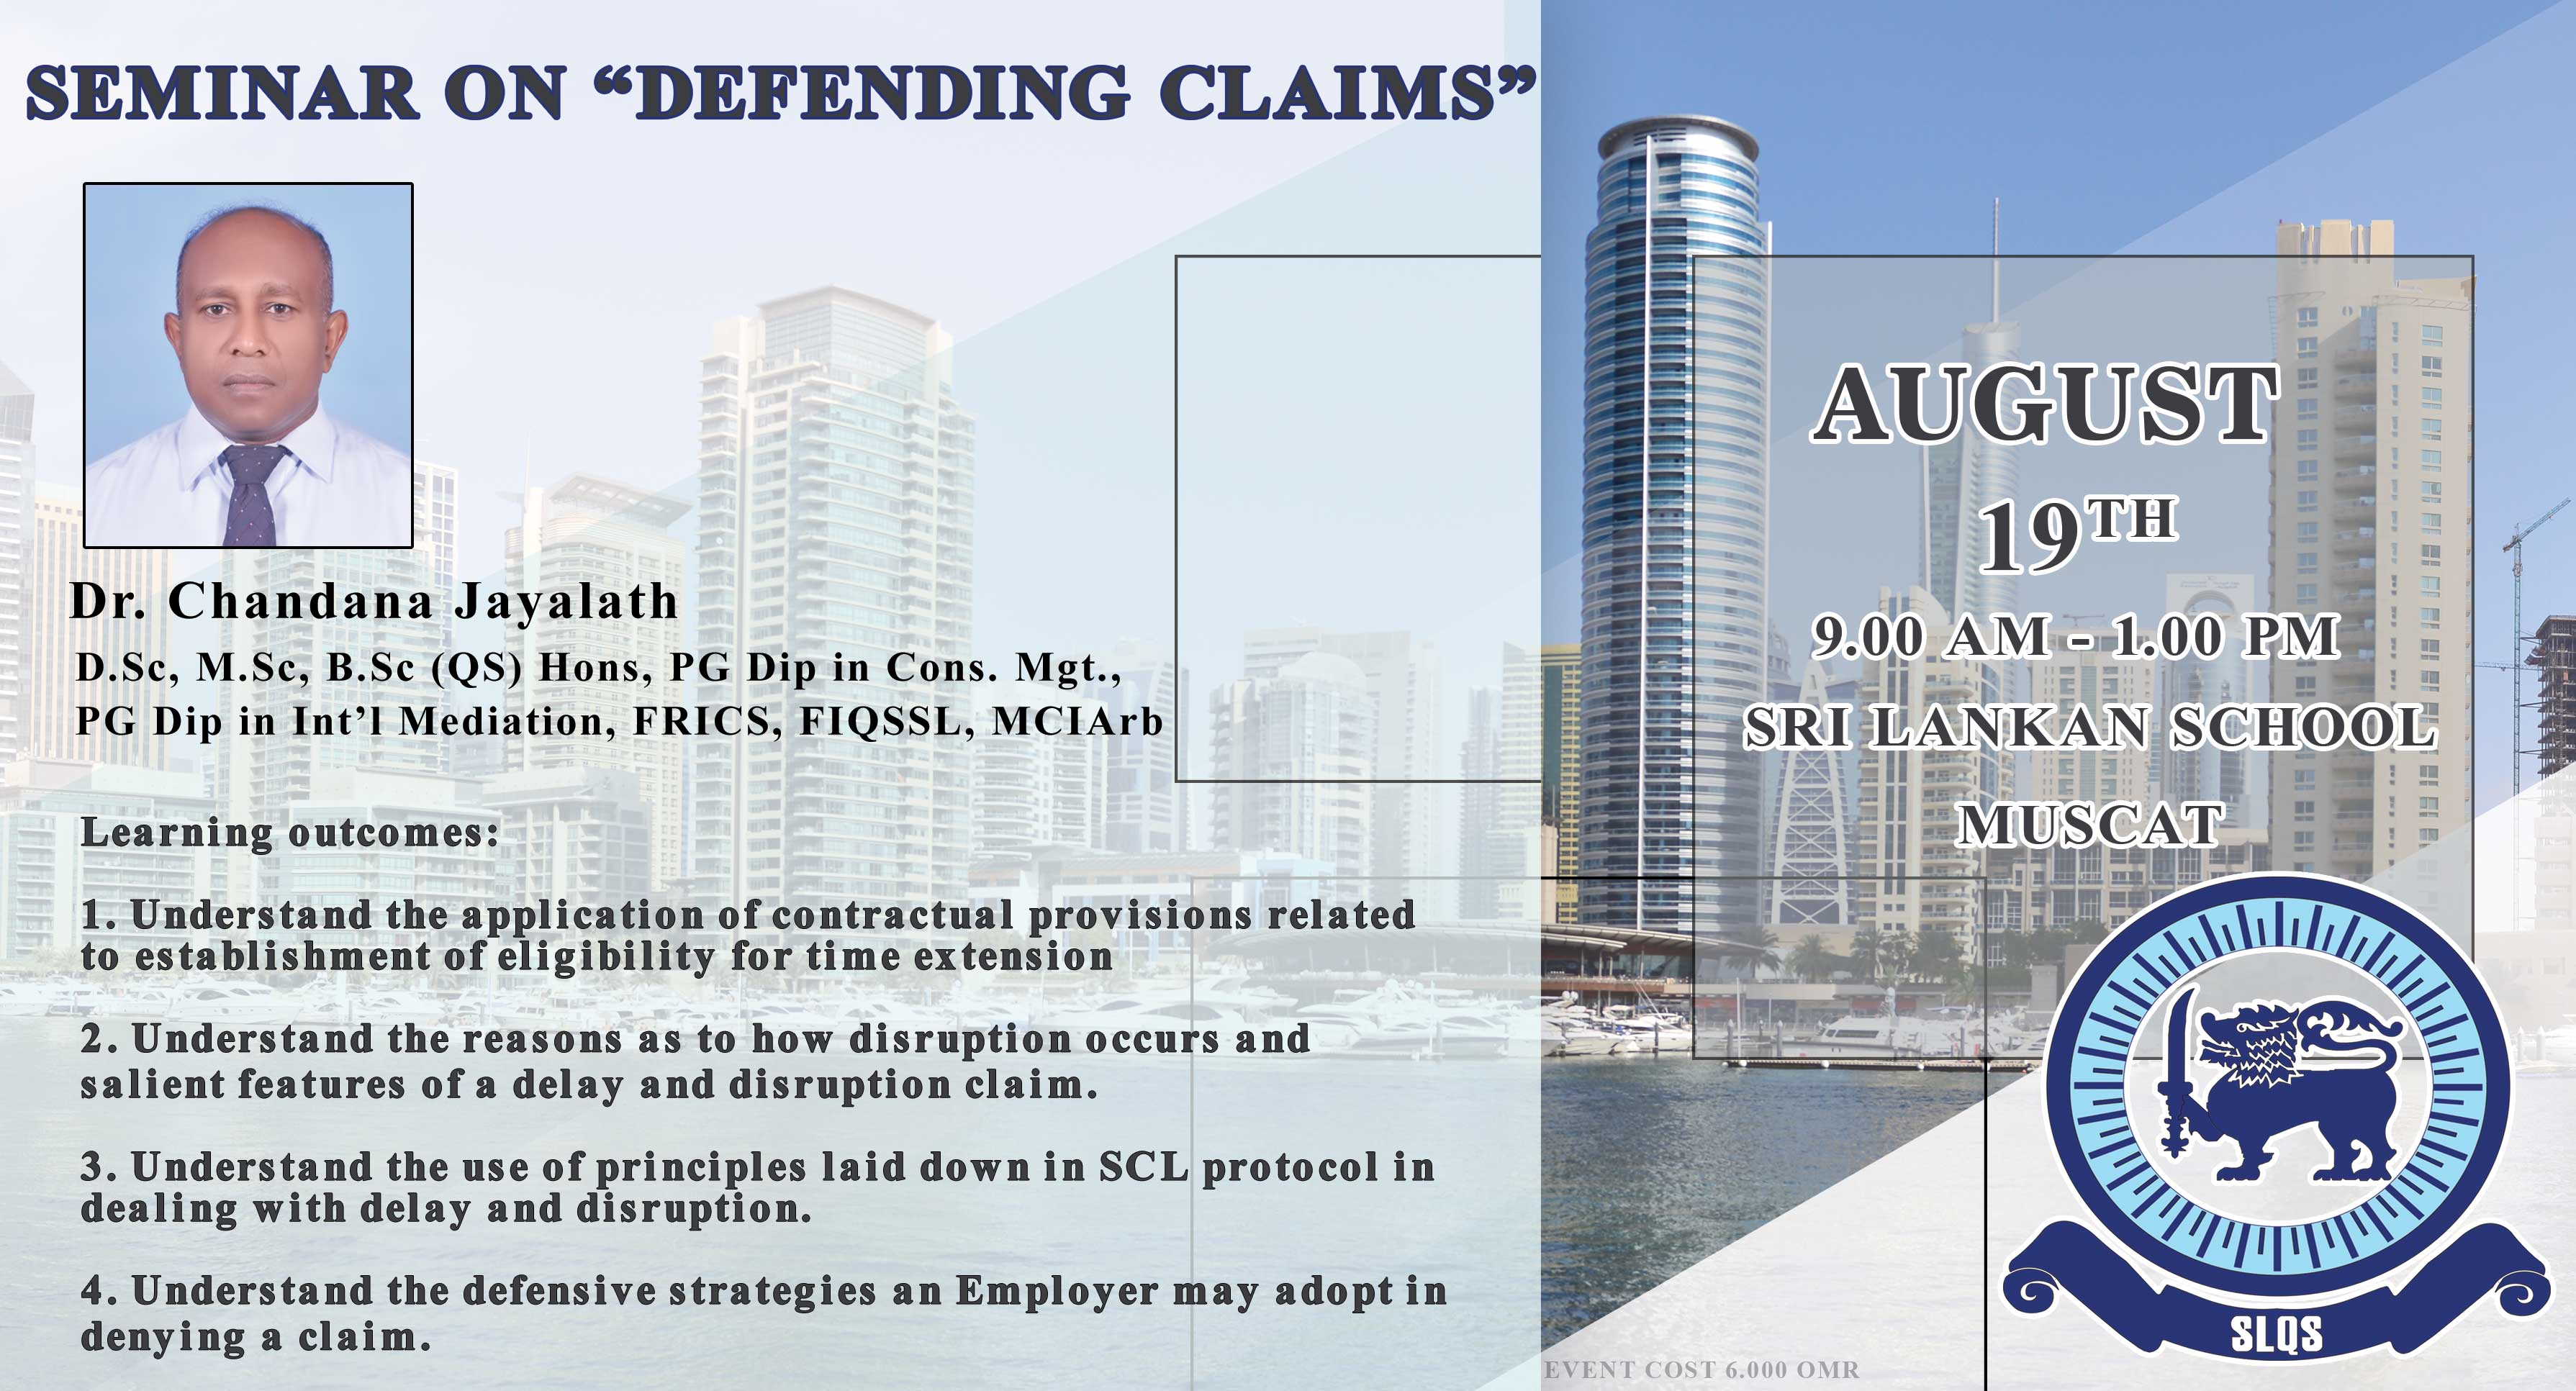 DEFENDING-CLAIMS